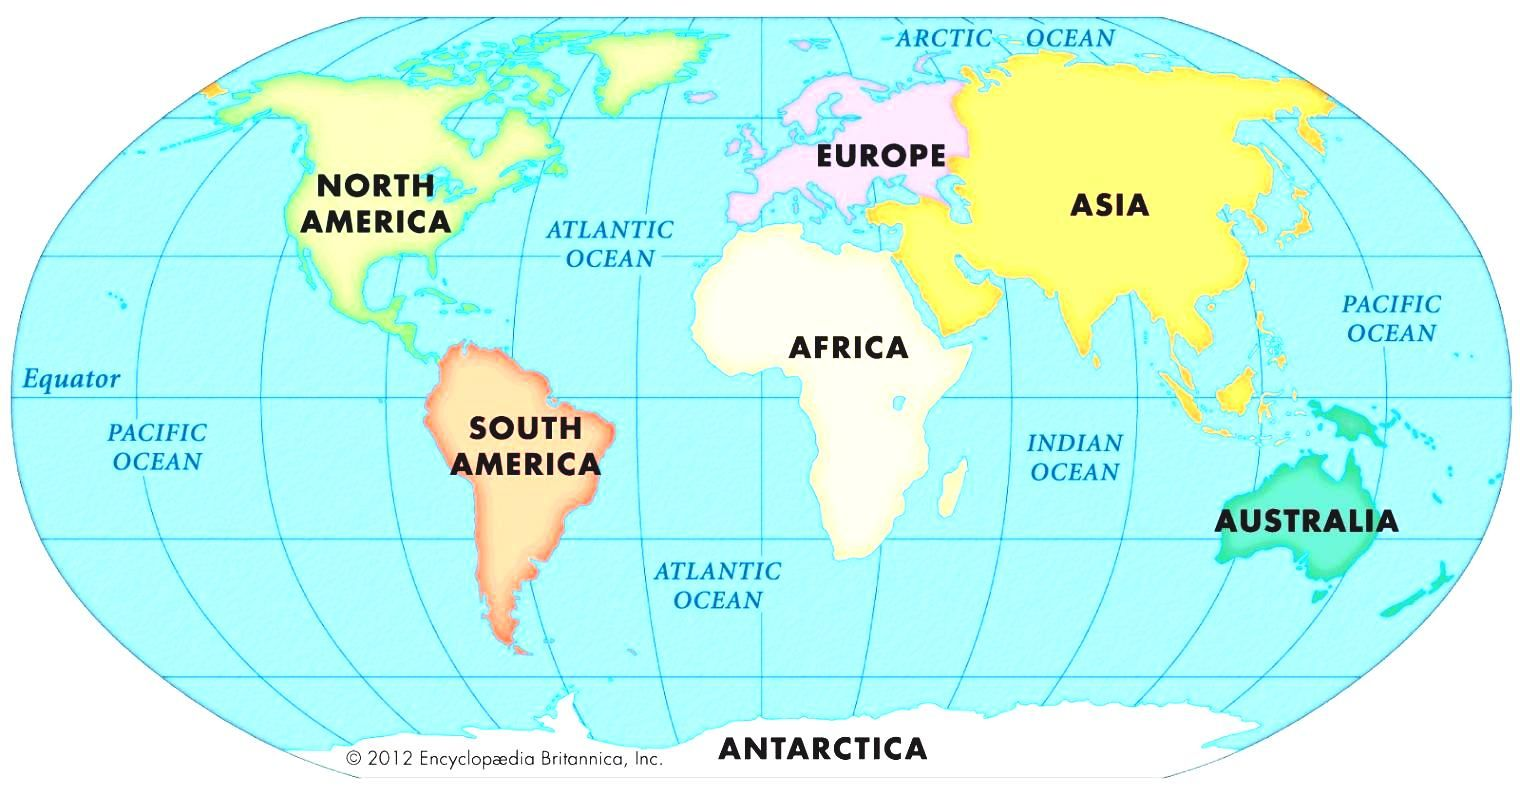 World Political Map With Oceans And Continents